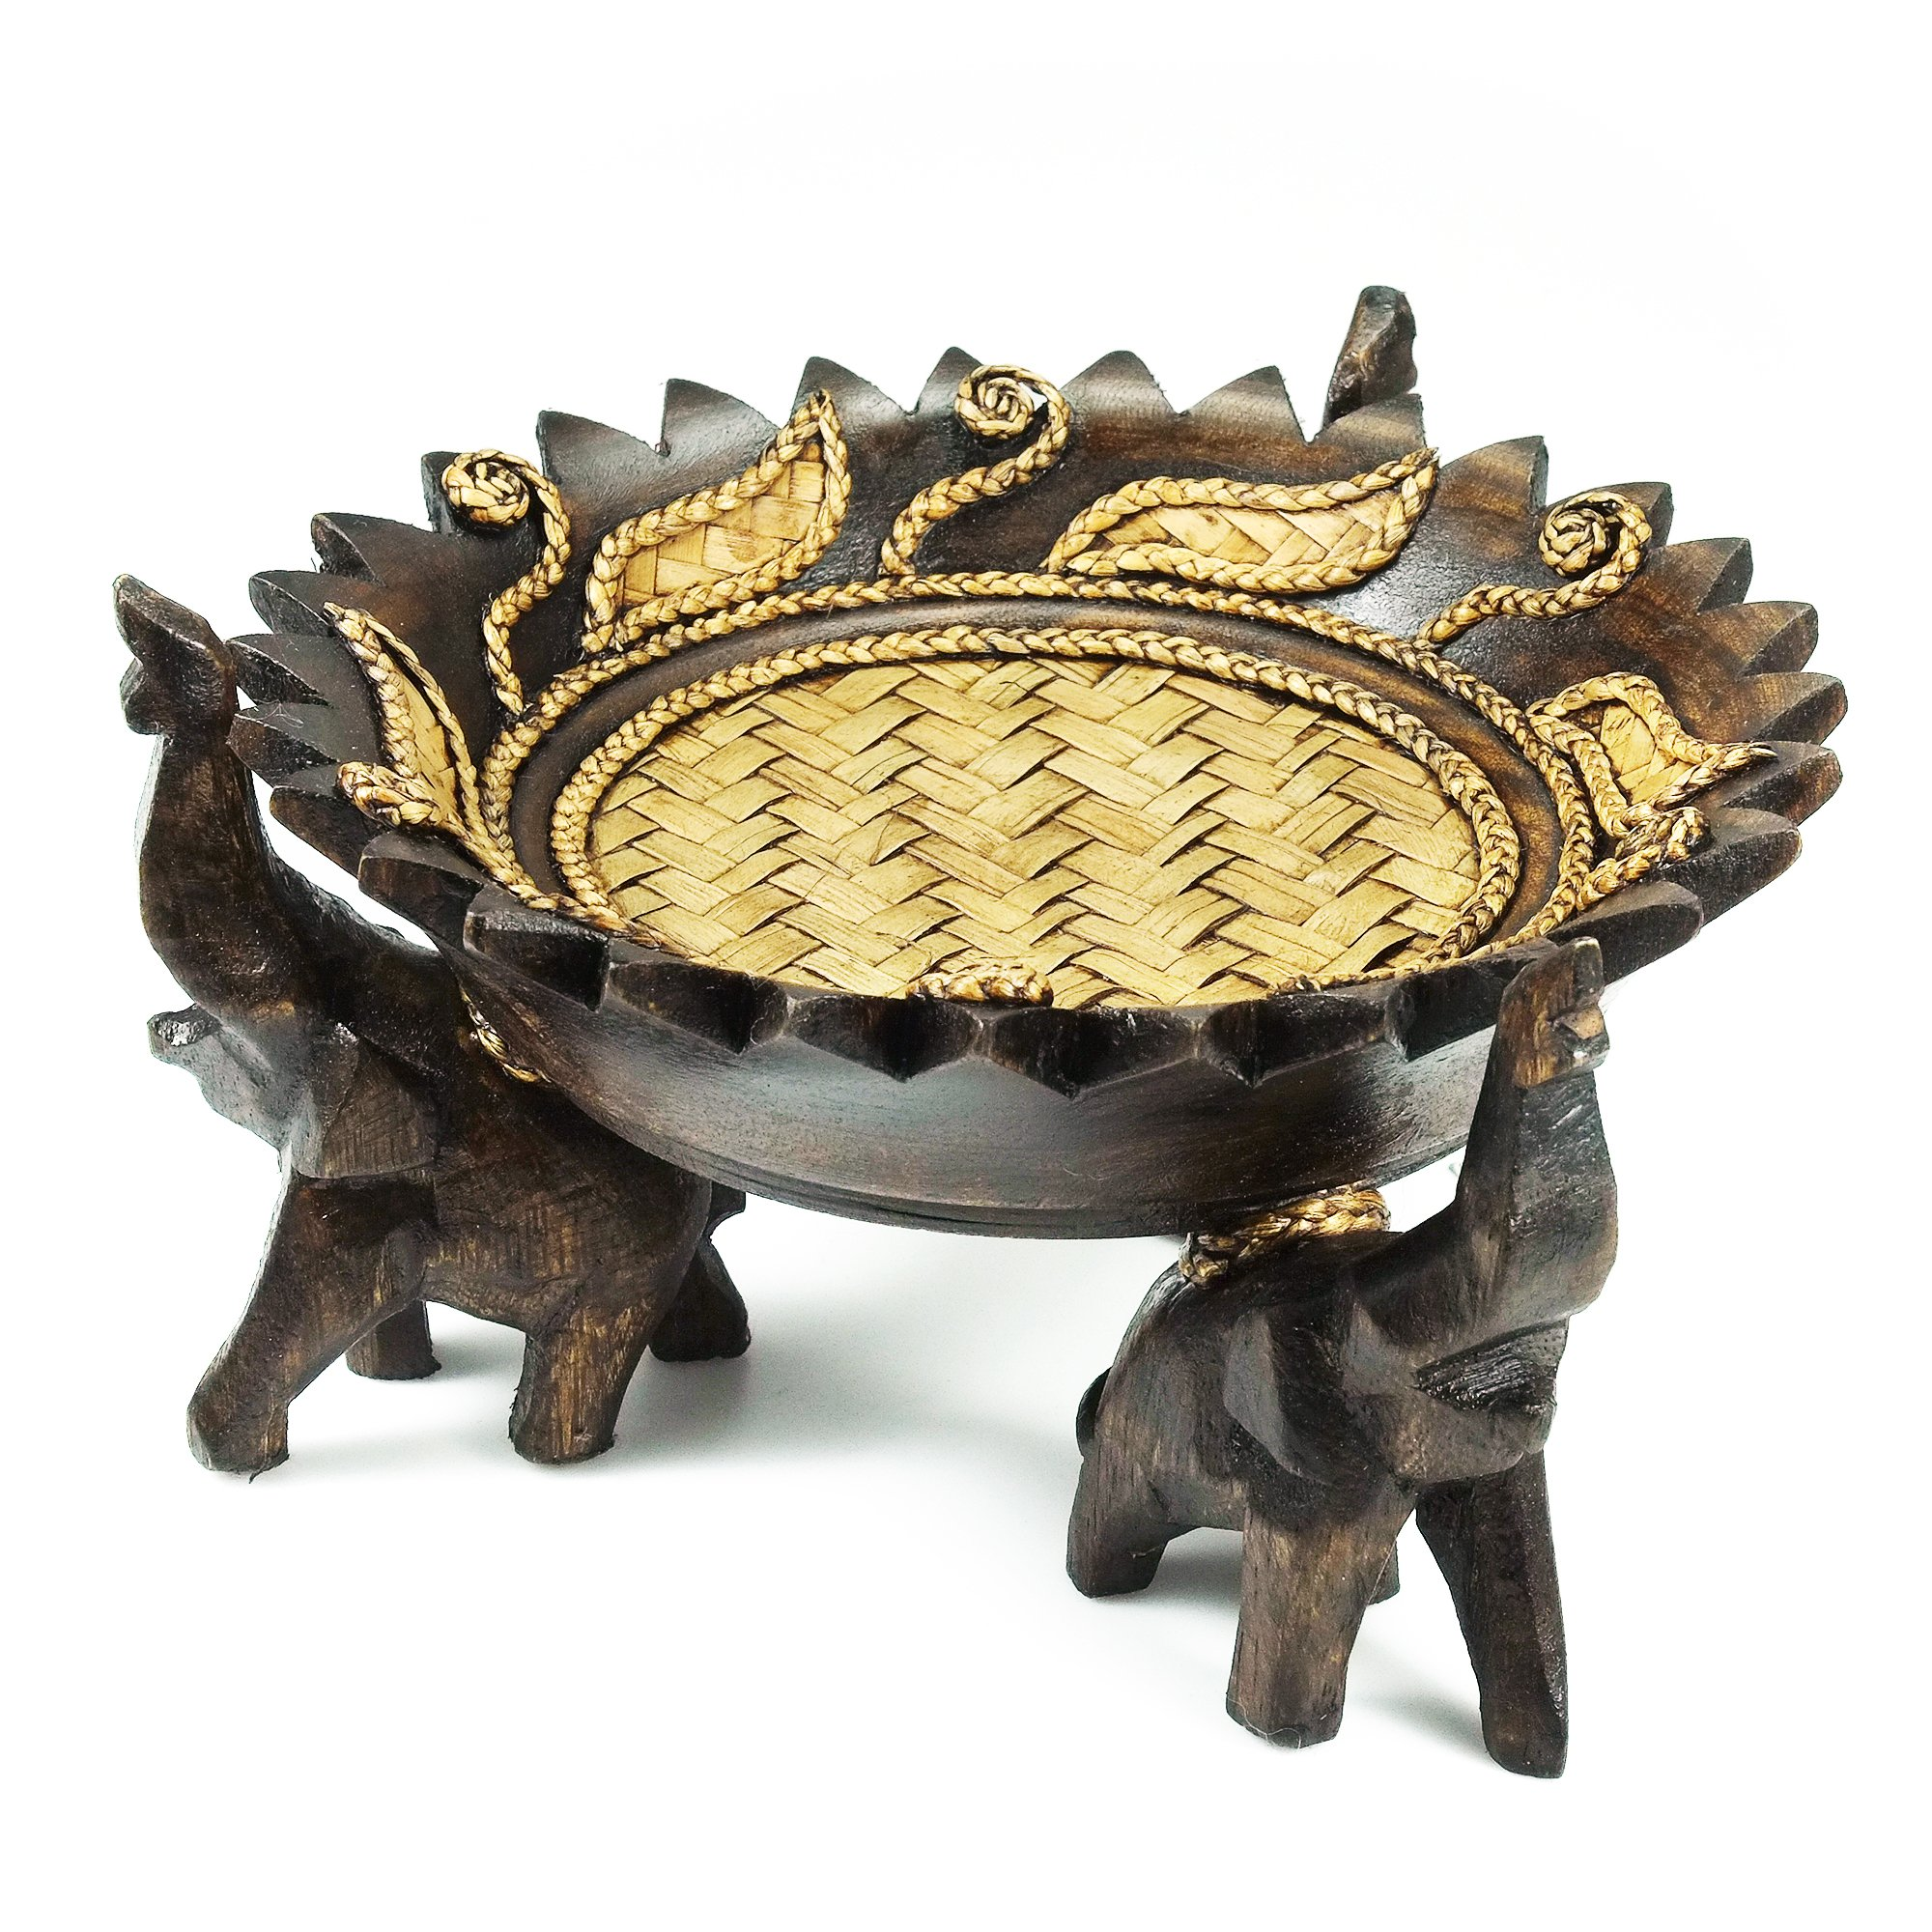 Rejoicing Elephant Tray Adorned with Royal Leaves Carved Rain Tree Wood Circular Bowl - Fair Trade Handicraft by Thai Artisans by AeraVida